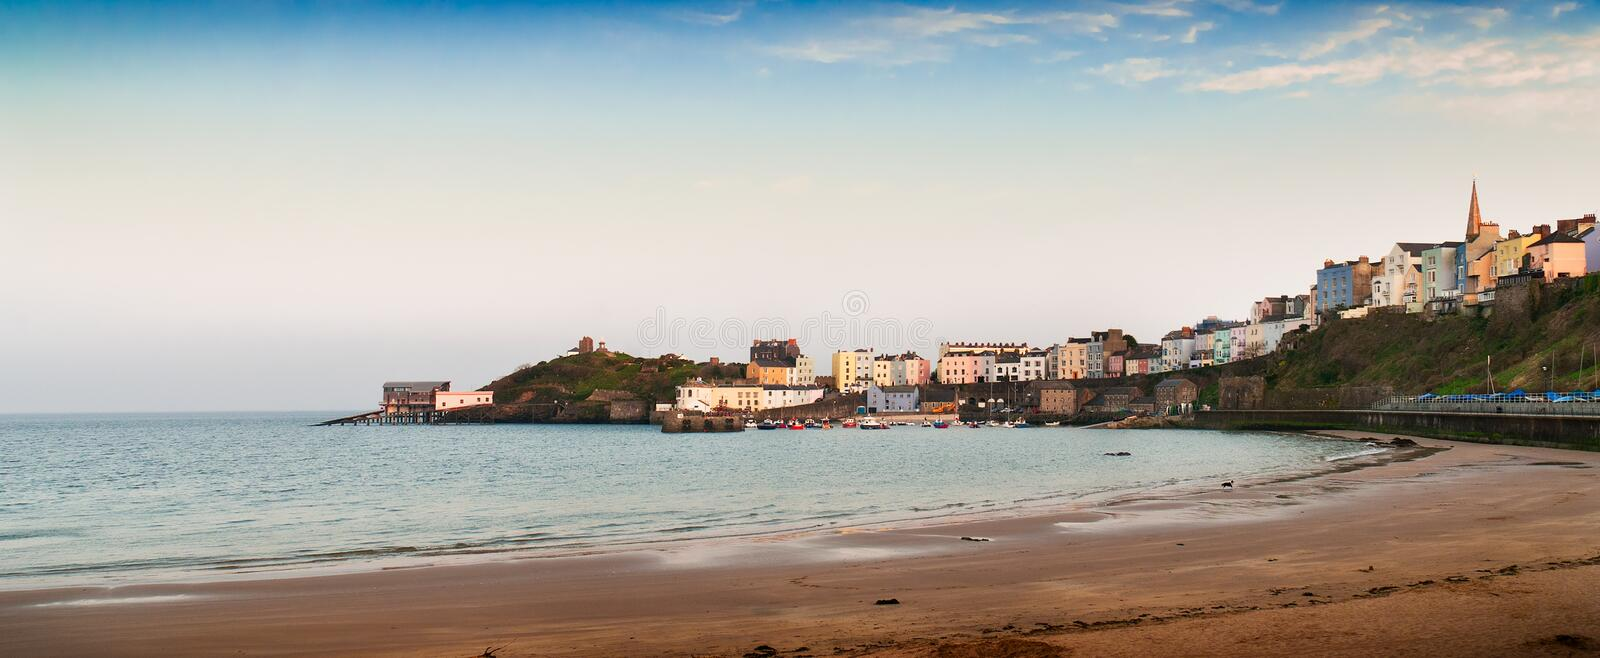 Tenby, Wales royalty free stock image